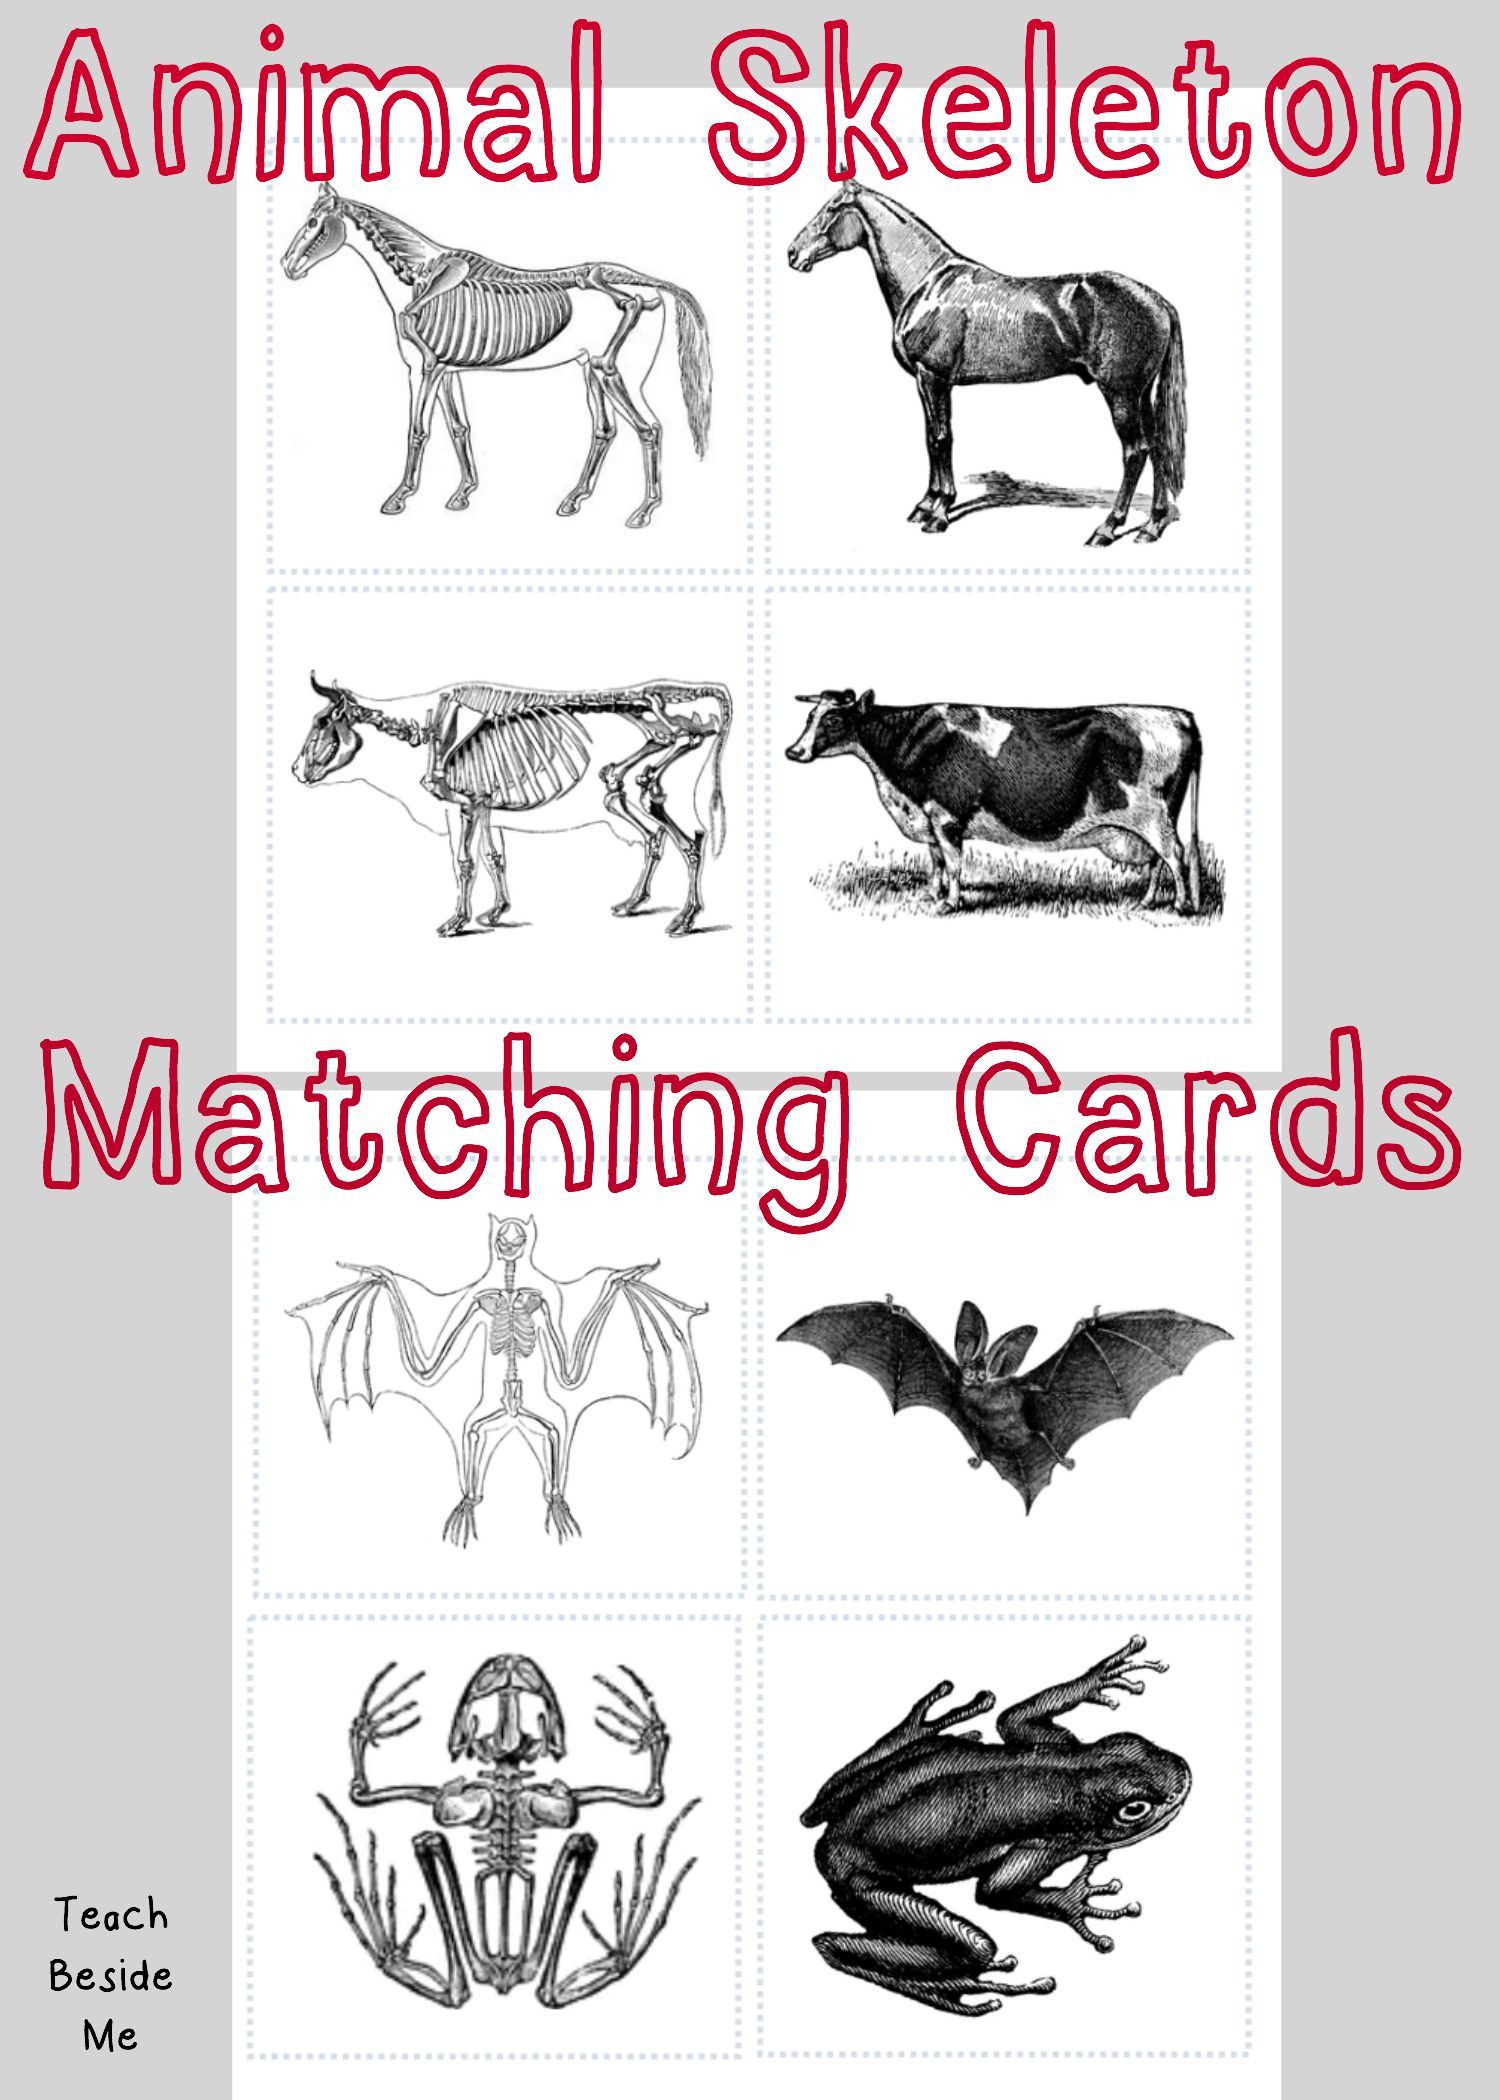 Animal Skeleton Matching Cards | احياء | Pinterest | Animal - Free Printable Animal X Rays